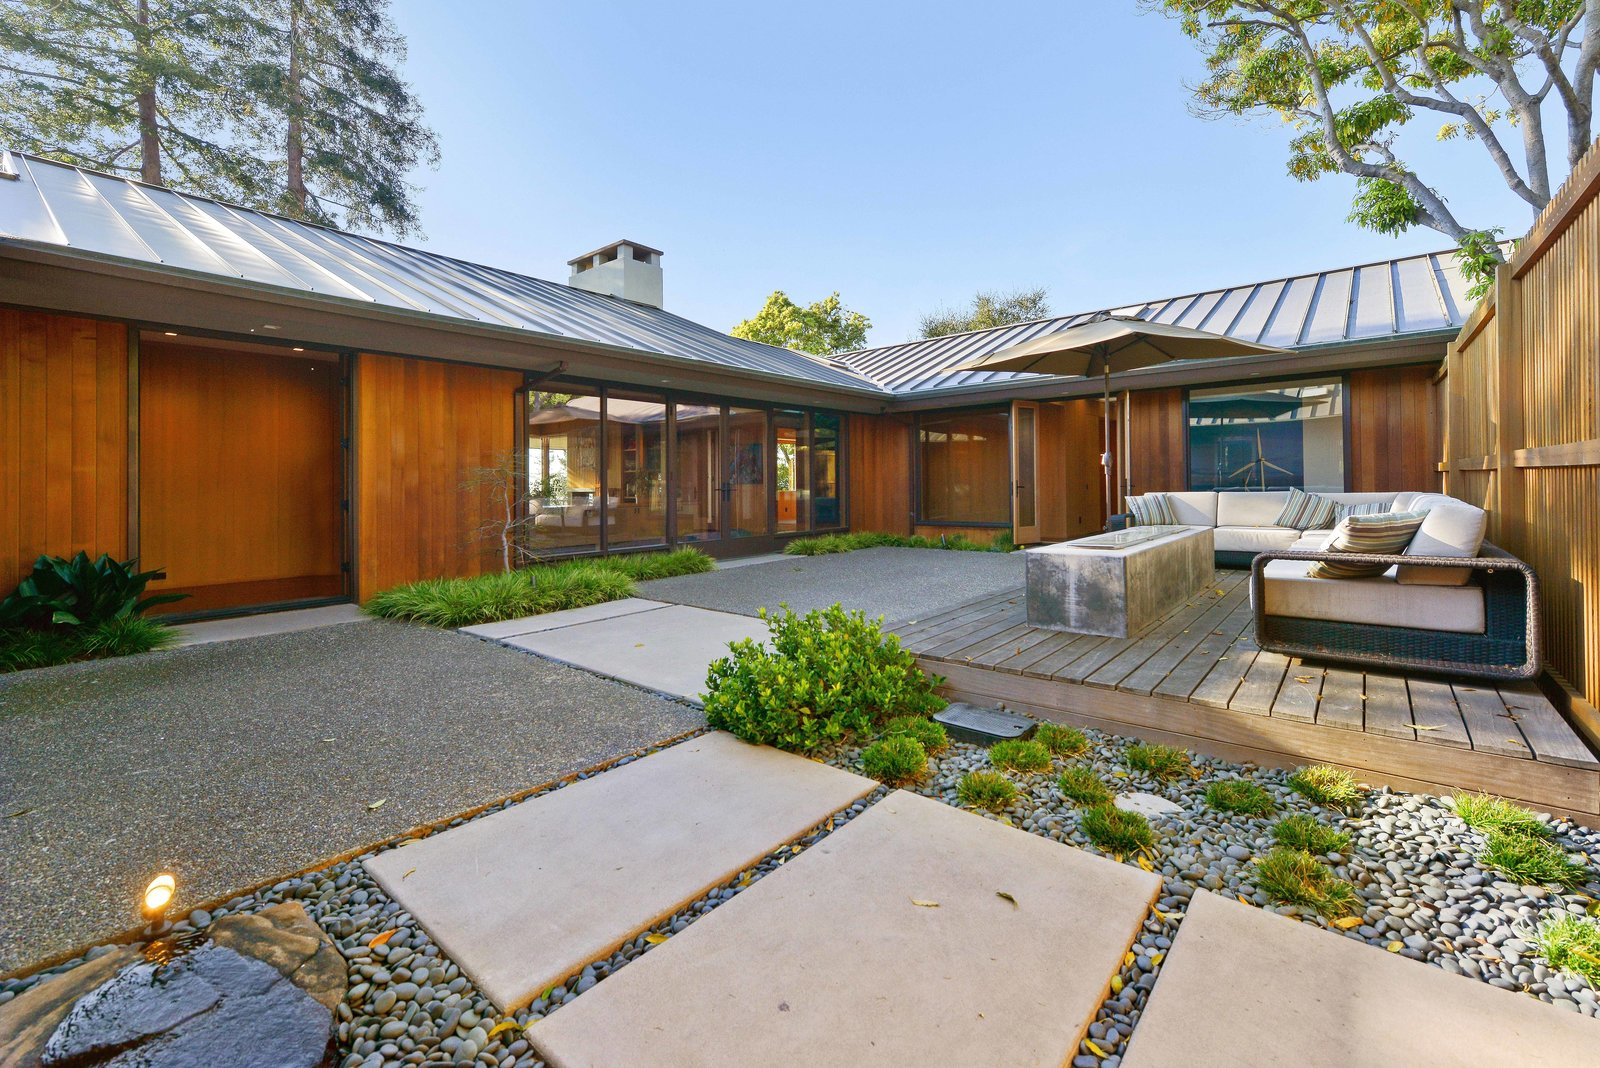 Shannon Bloemker's hillside home in Piedmont, California, is arranged in a C-shape with protected courtyards. A Quintessential Midcentury Home Goes LEED Platinum - Photo 2 of 6